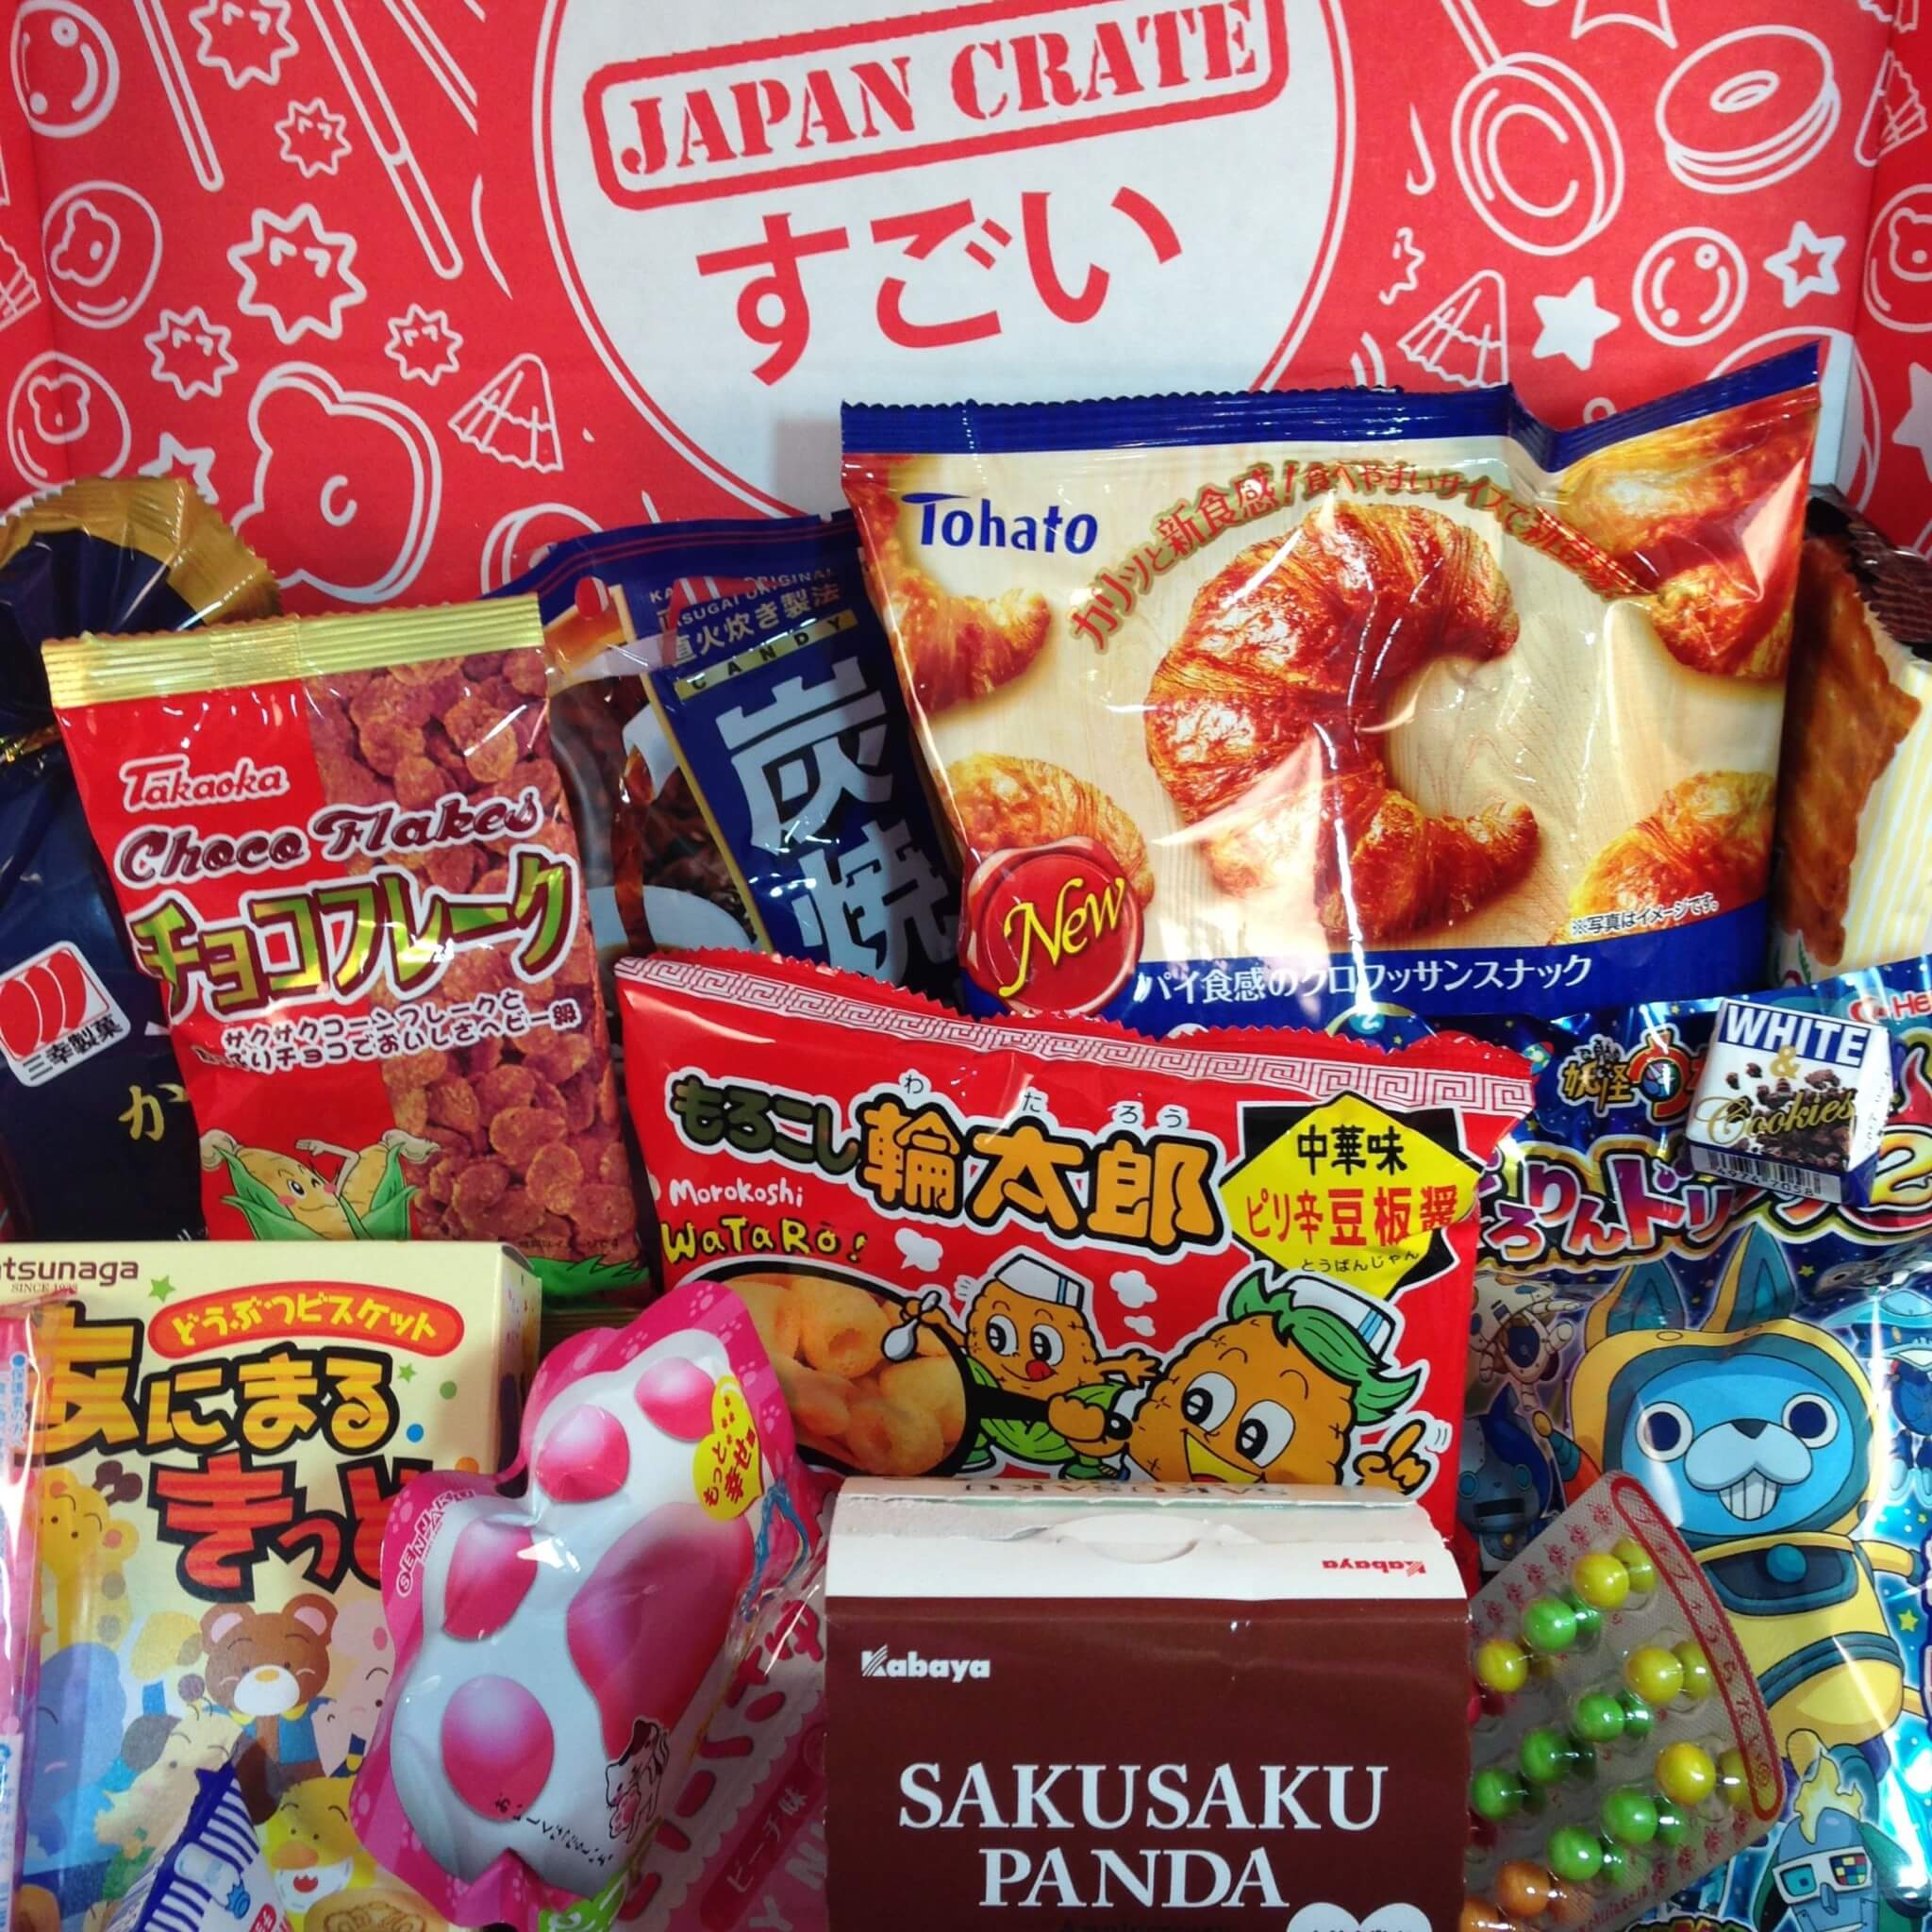 Japan Crate July 2016 Subscription Box Review + Coupon